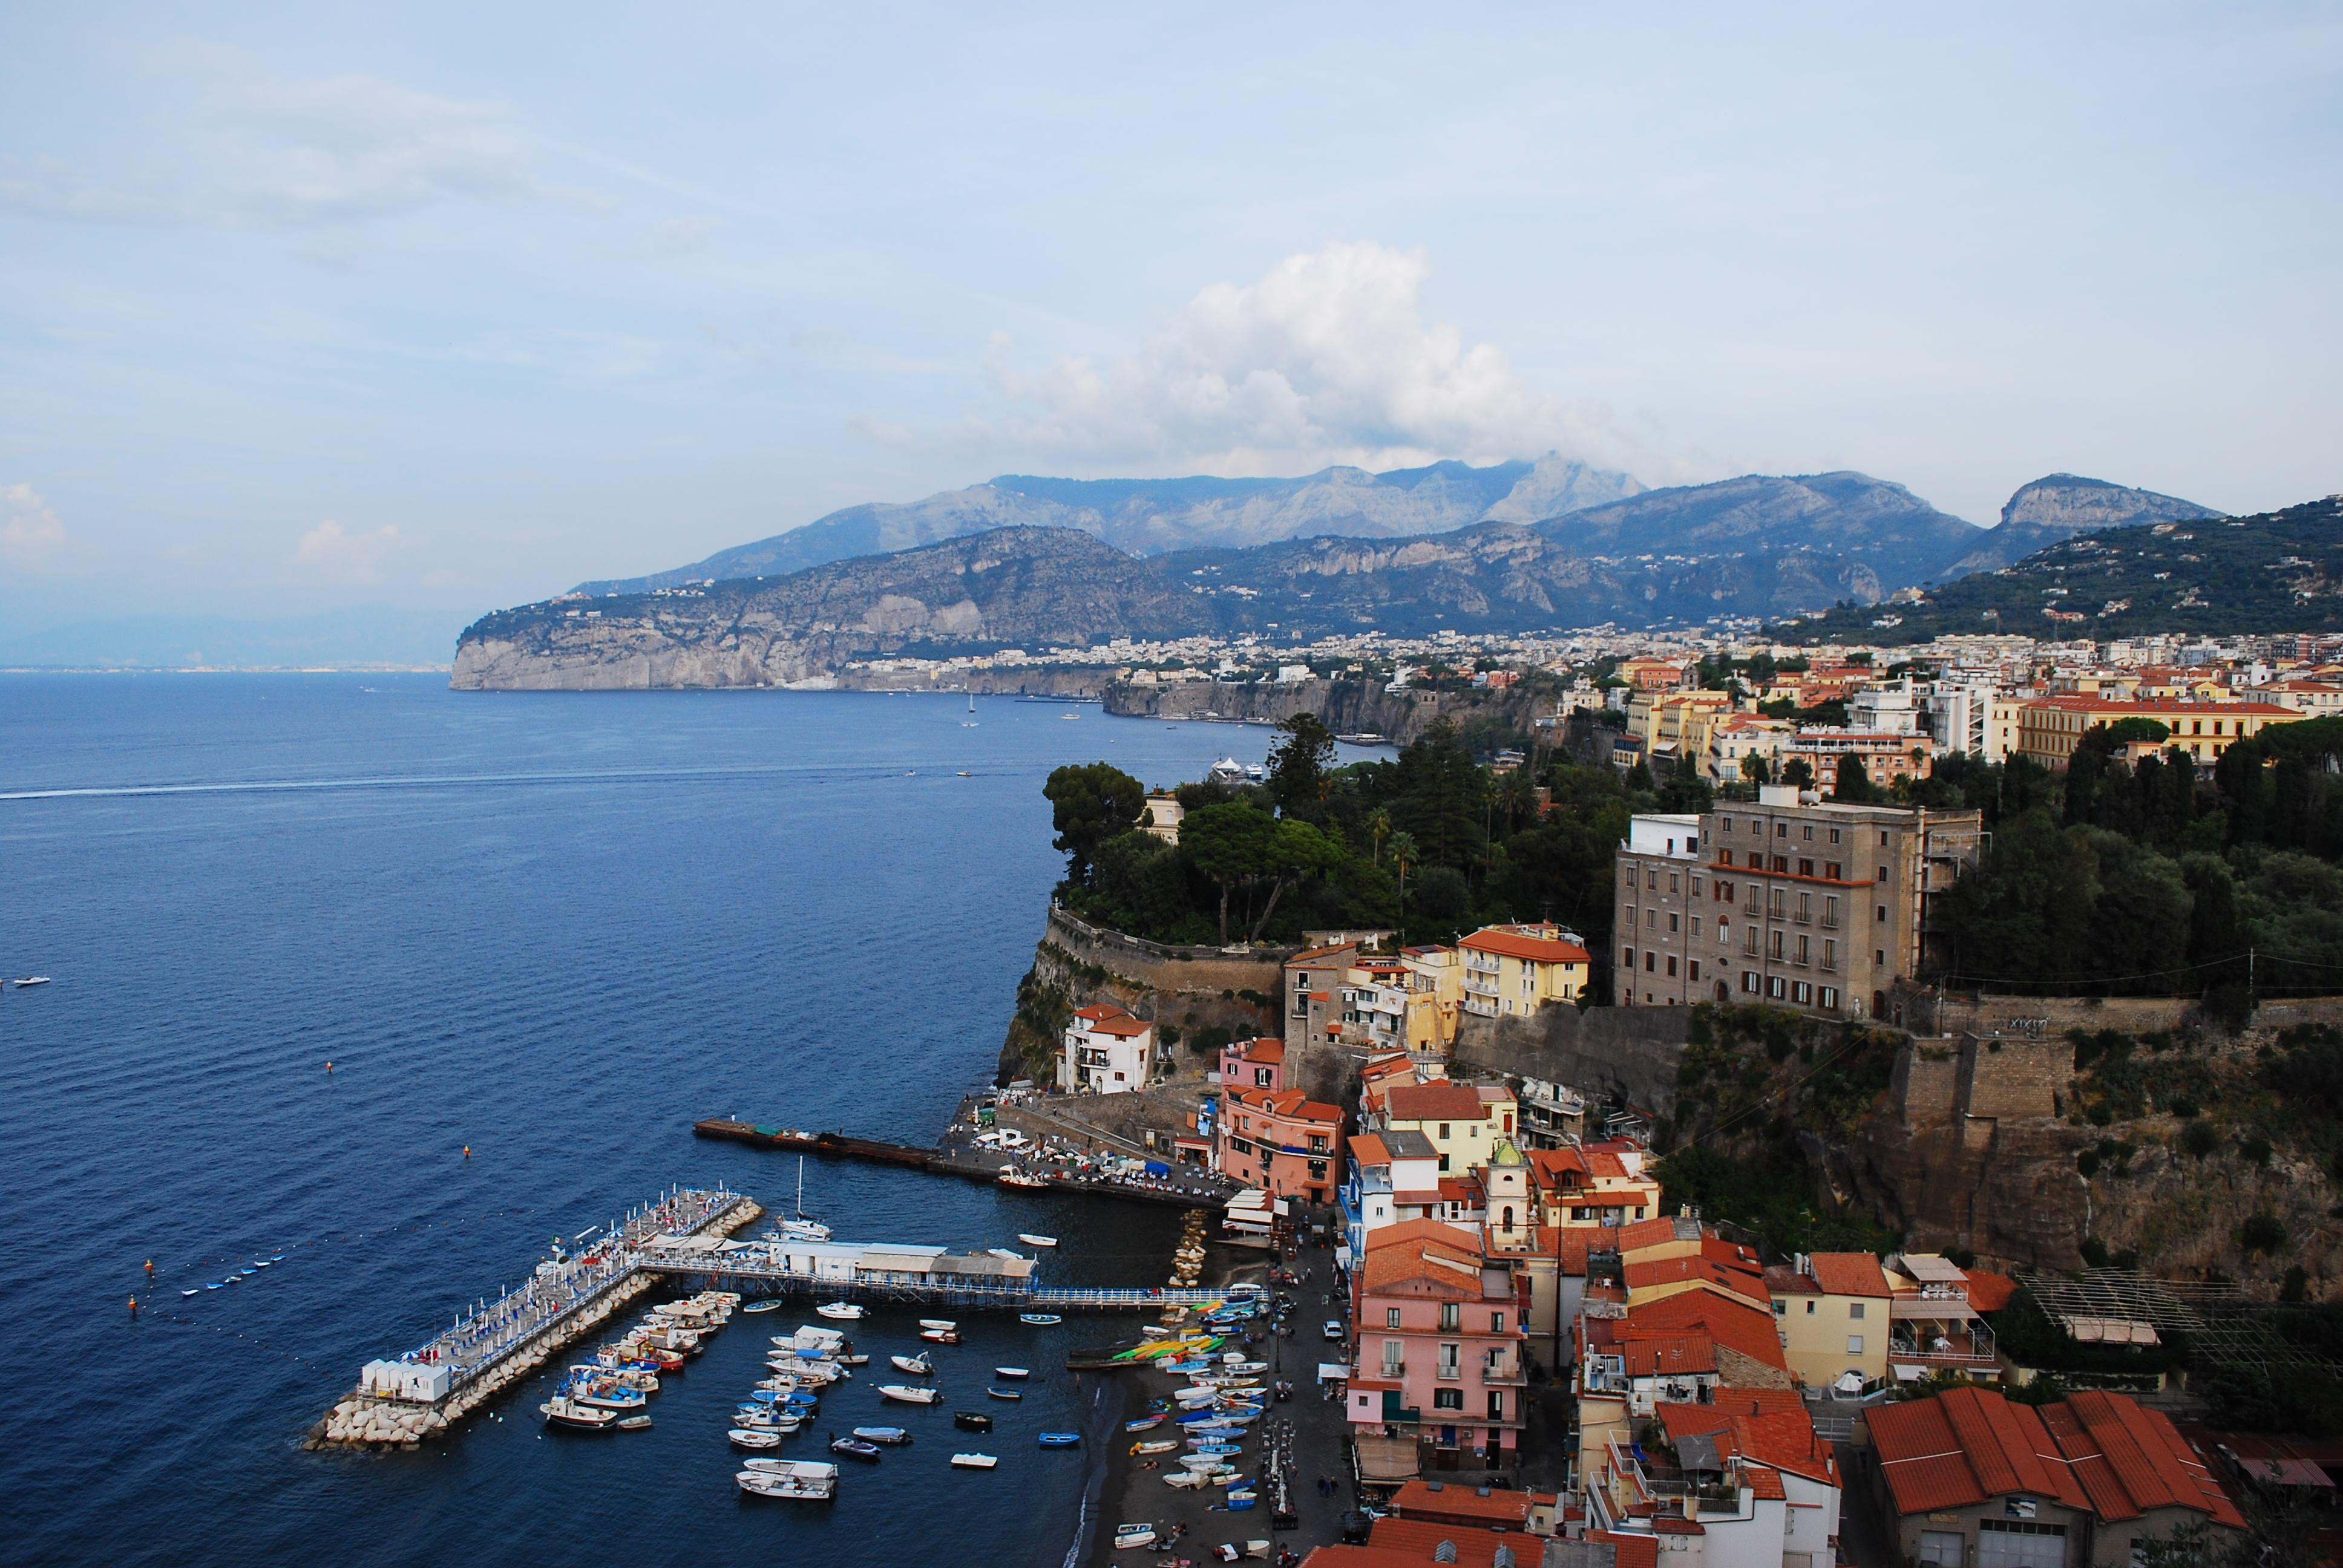 The Italian Roadtrip – Day 8 and 9 – Sorrento